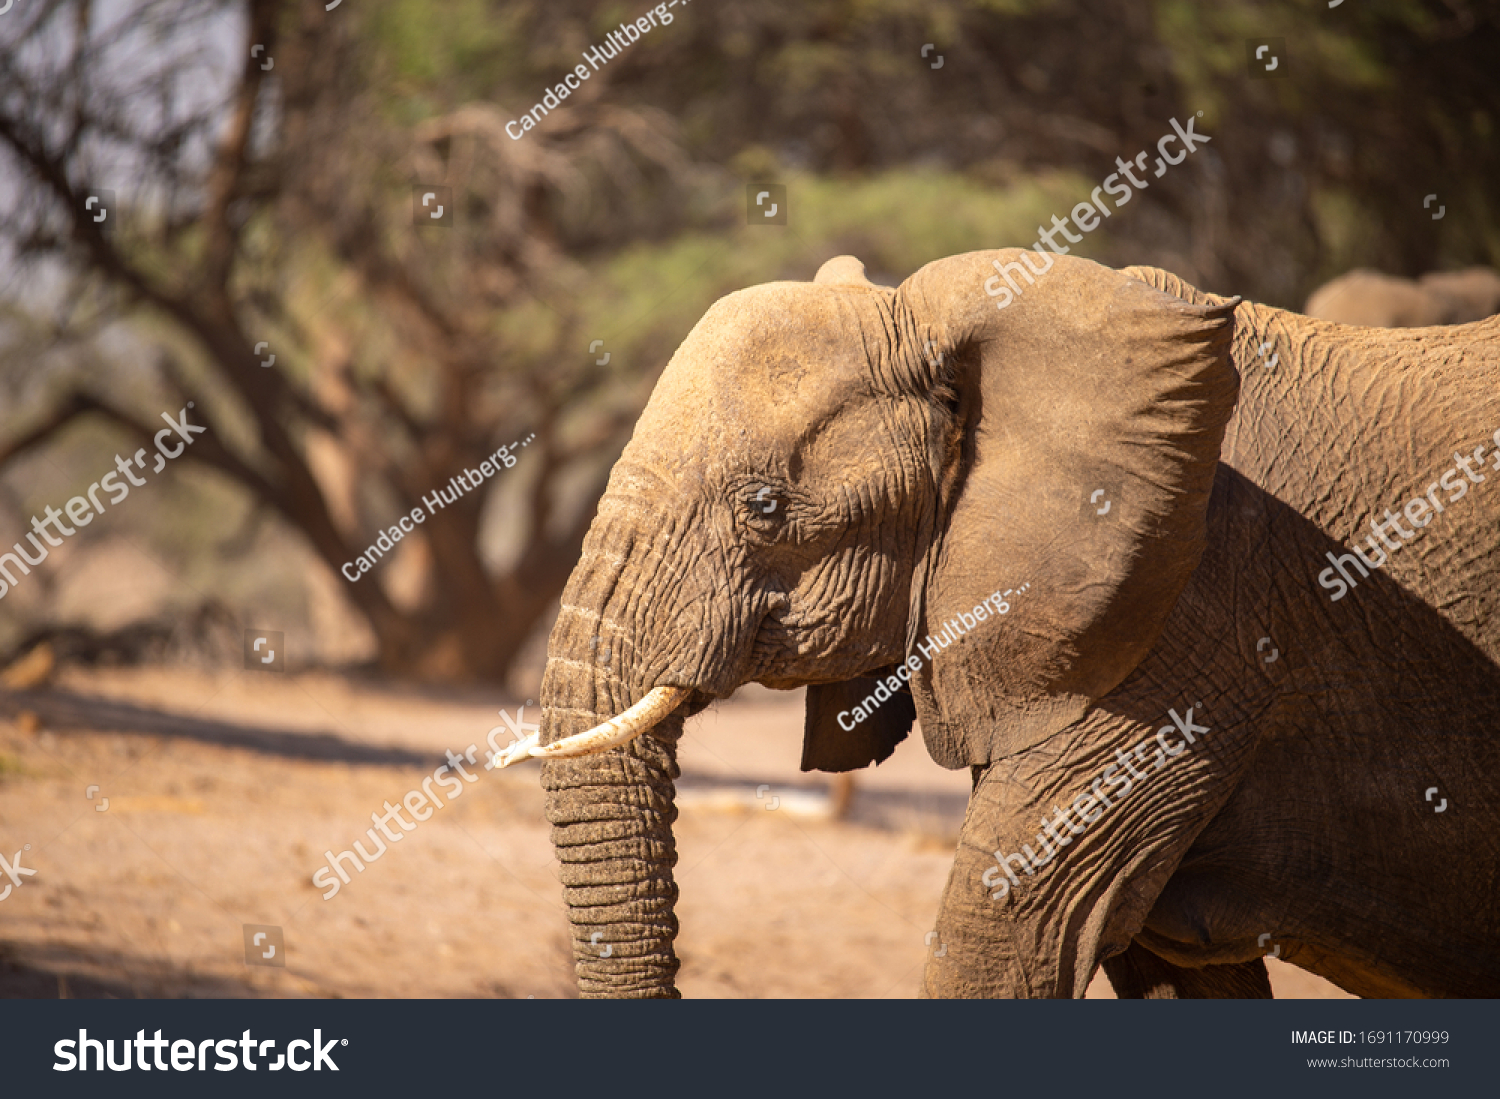 African elephant in the wild #1691170999